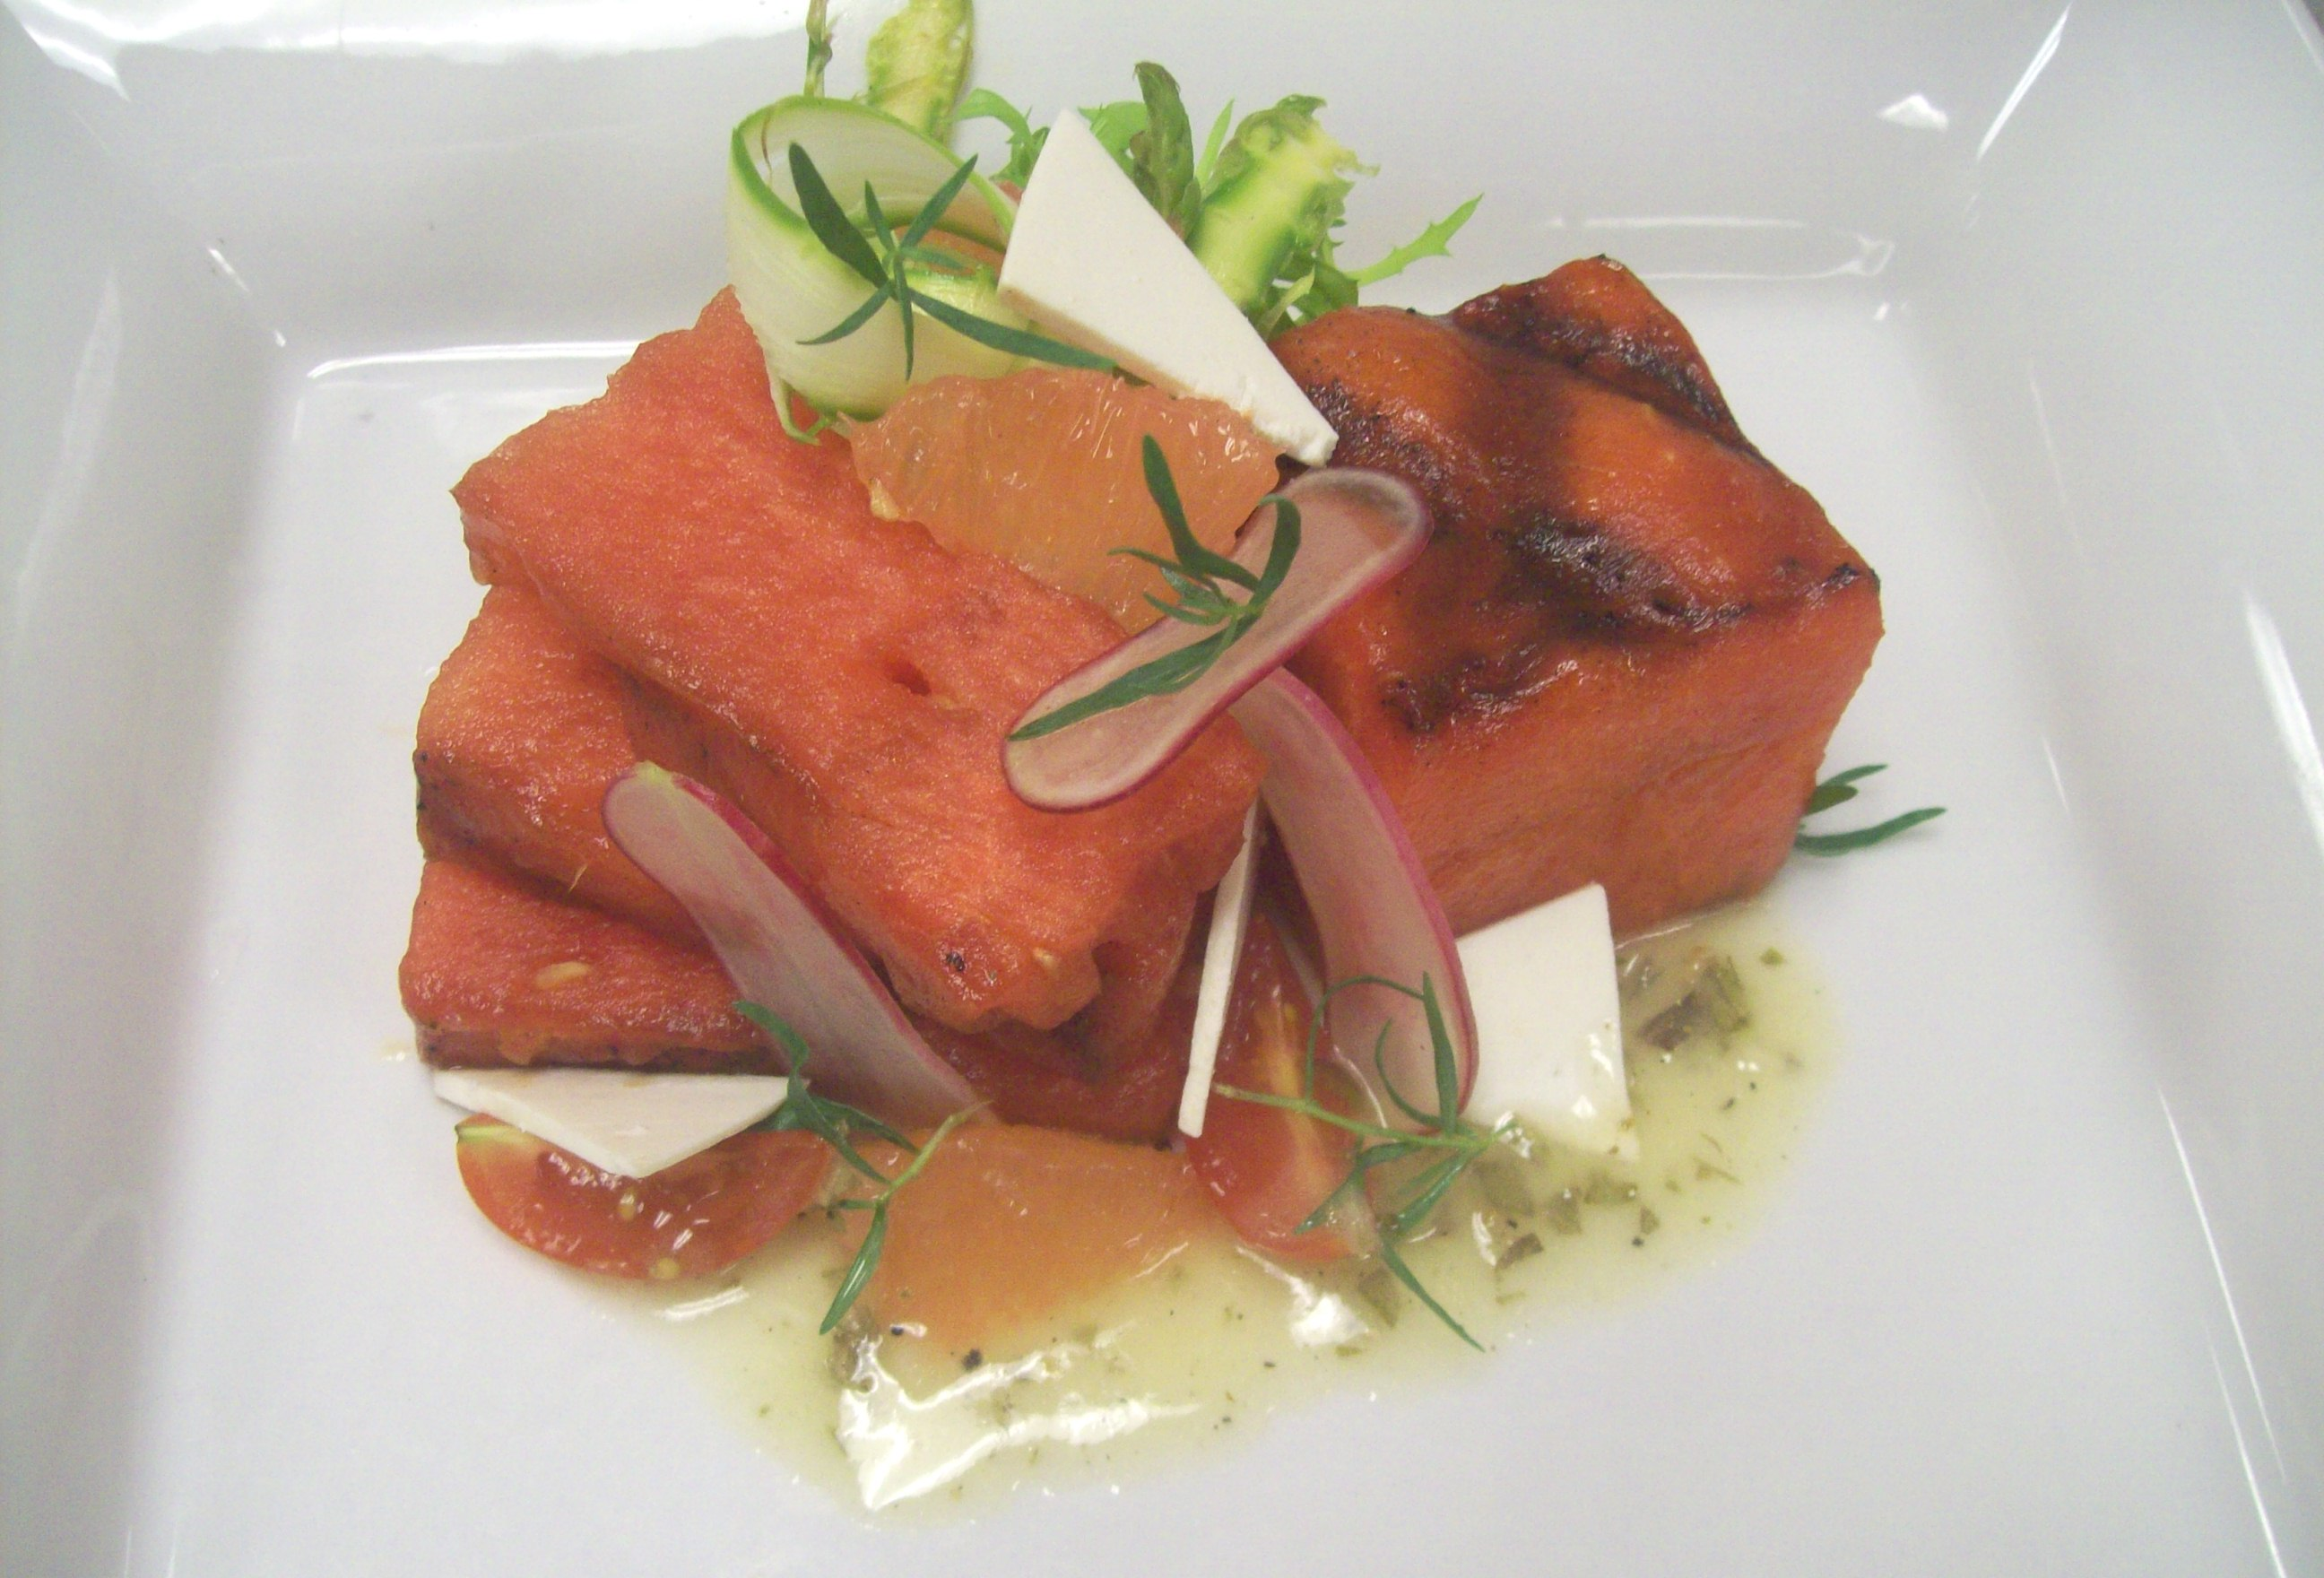 Grilled Watermelon Salad from 606 Congress